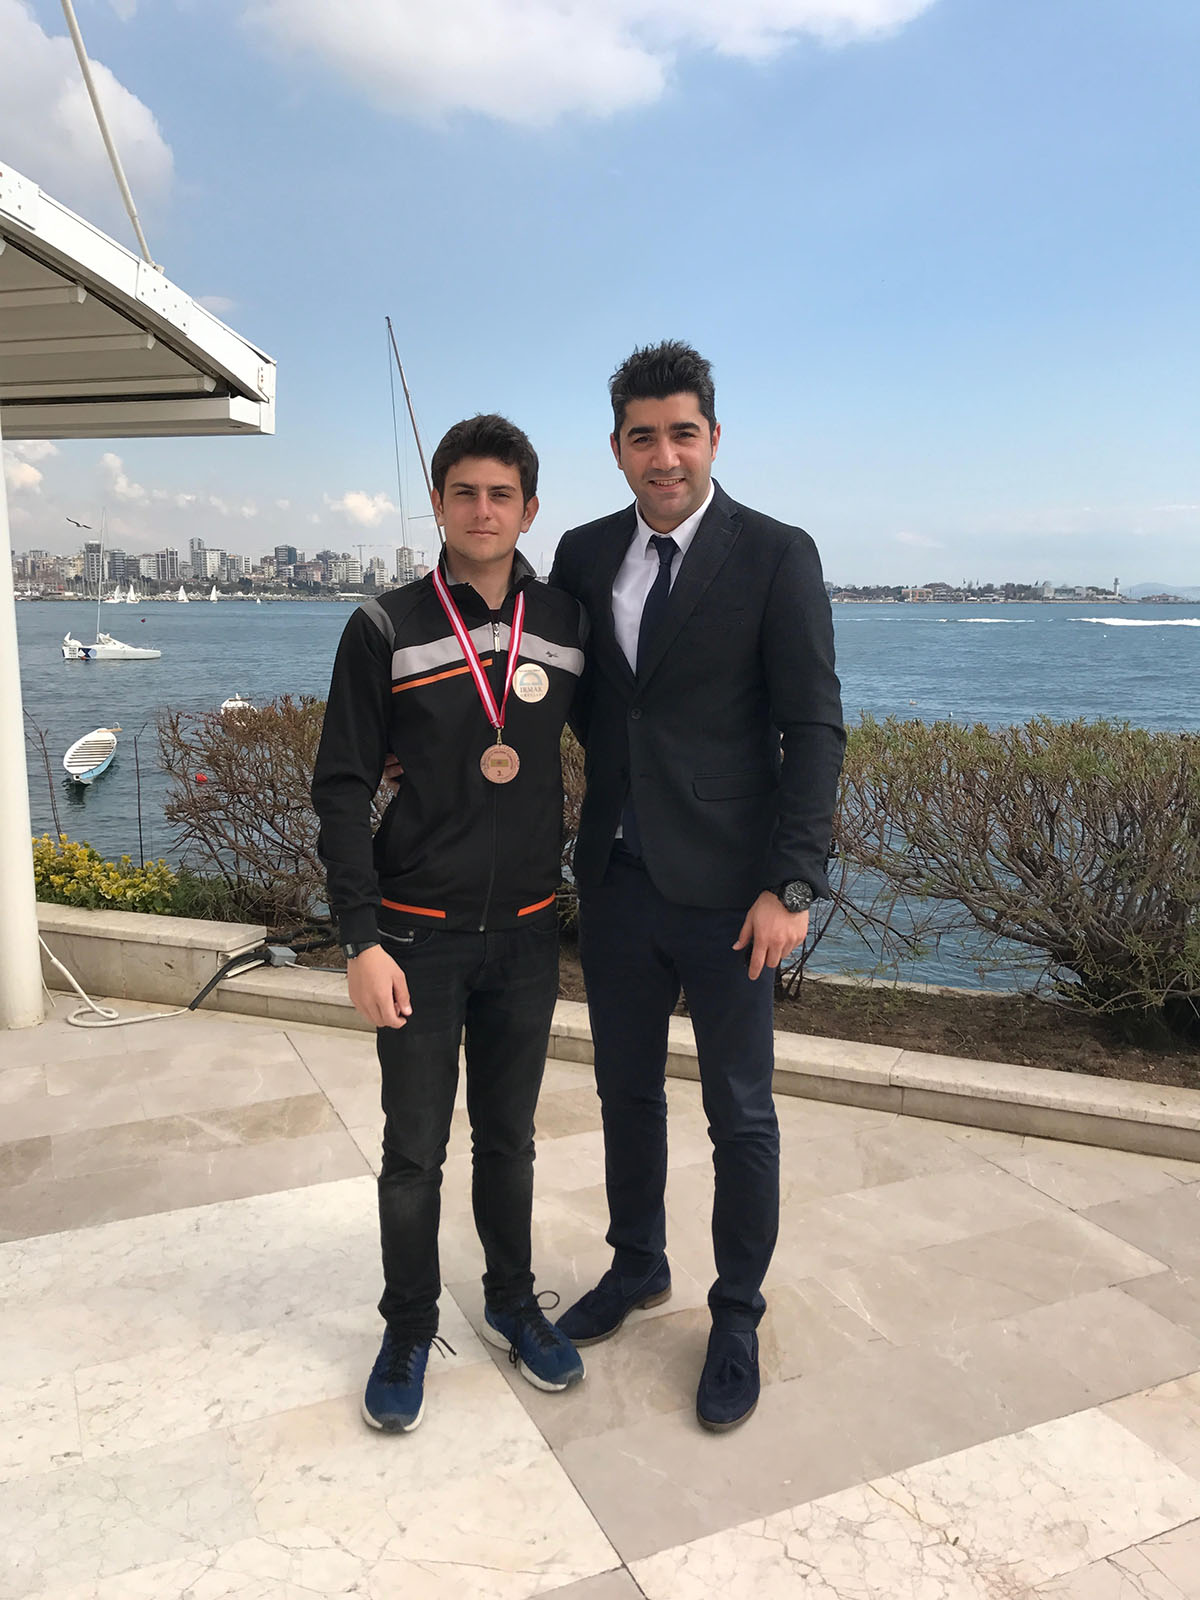 Sailing Accomplishment of Our Student, Kerem Ates